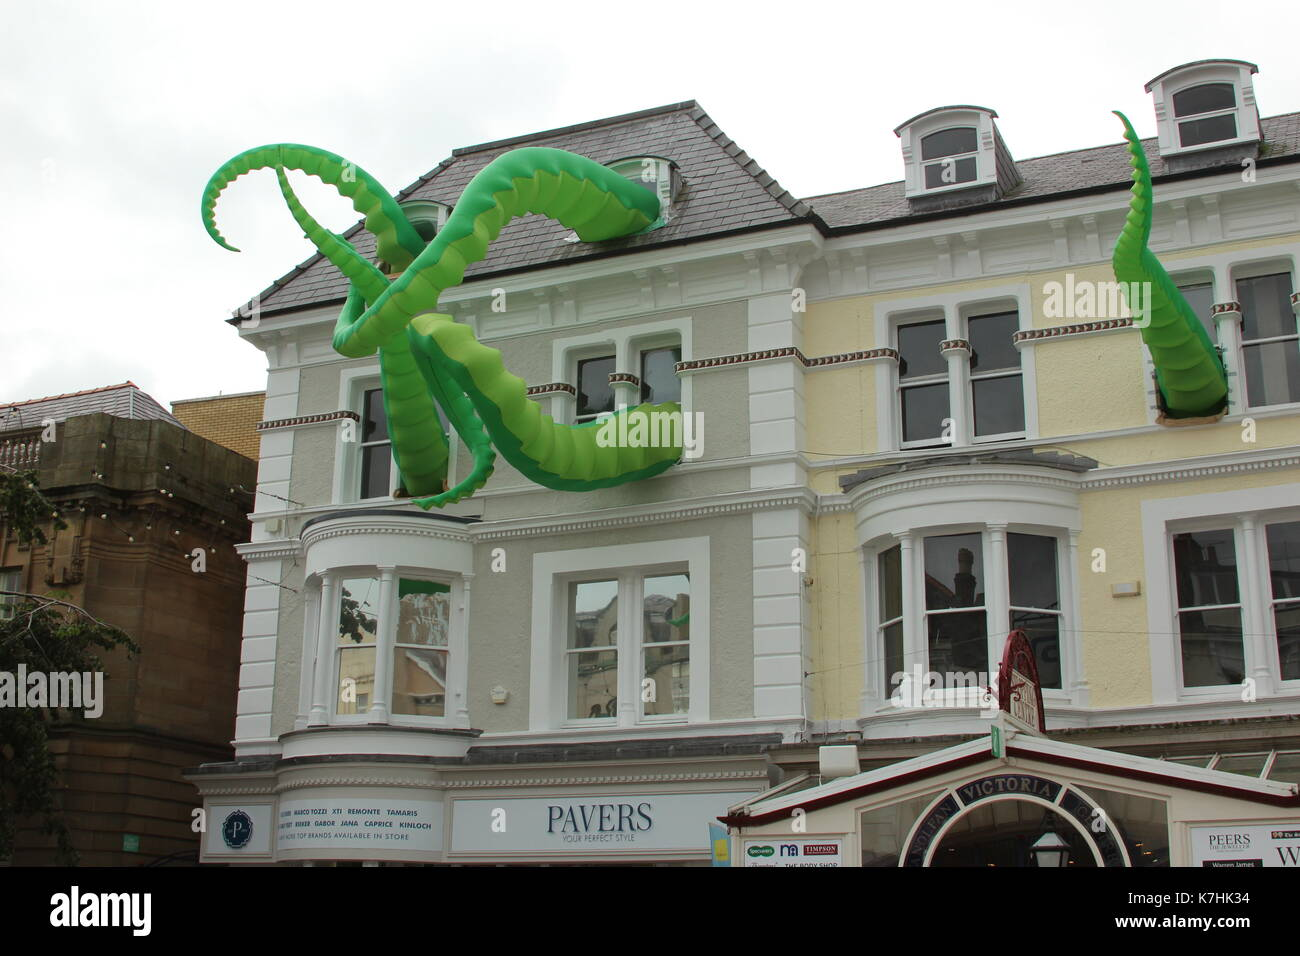 Llandudno,Wales,UK Saturday 16 September 2017  These green tentacles waving from the towns victoria shopping centre are art attacks, a work created by street artist filthy luker as part of the Llawn05 festival. Credit: Mike Clarke/Alamy Live News - Stock Image